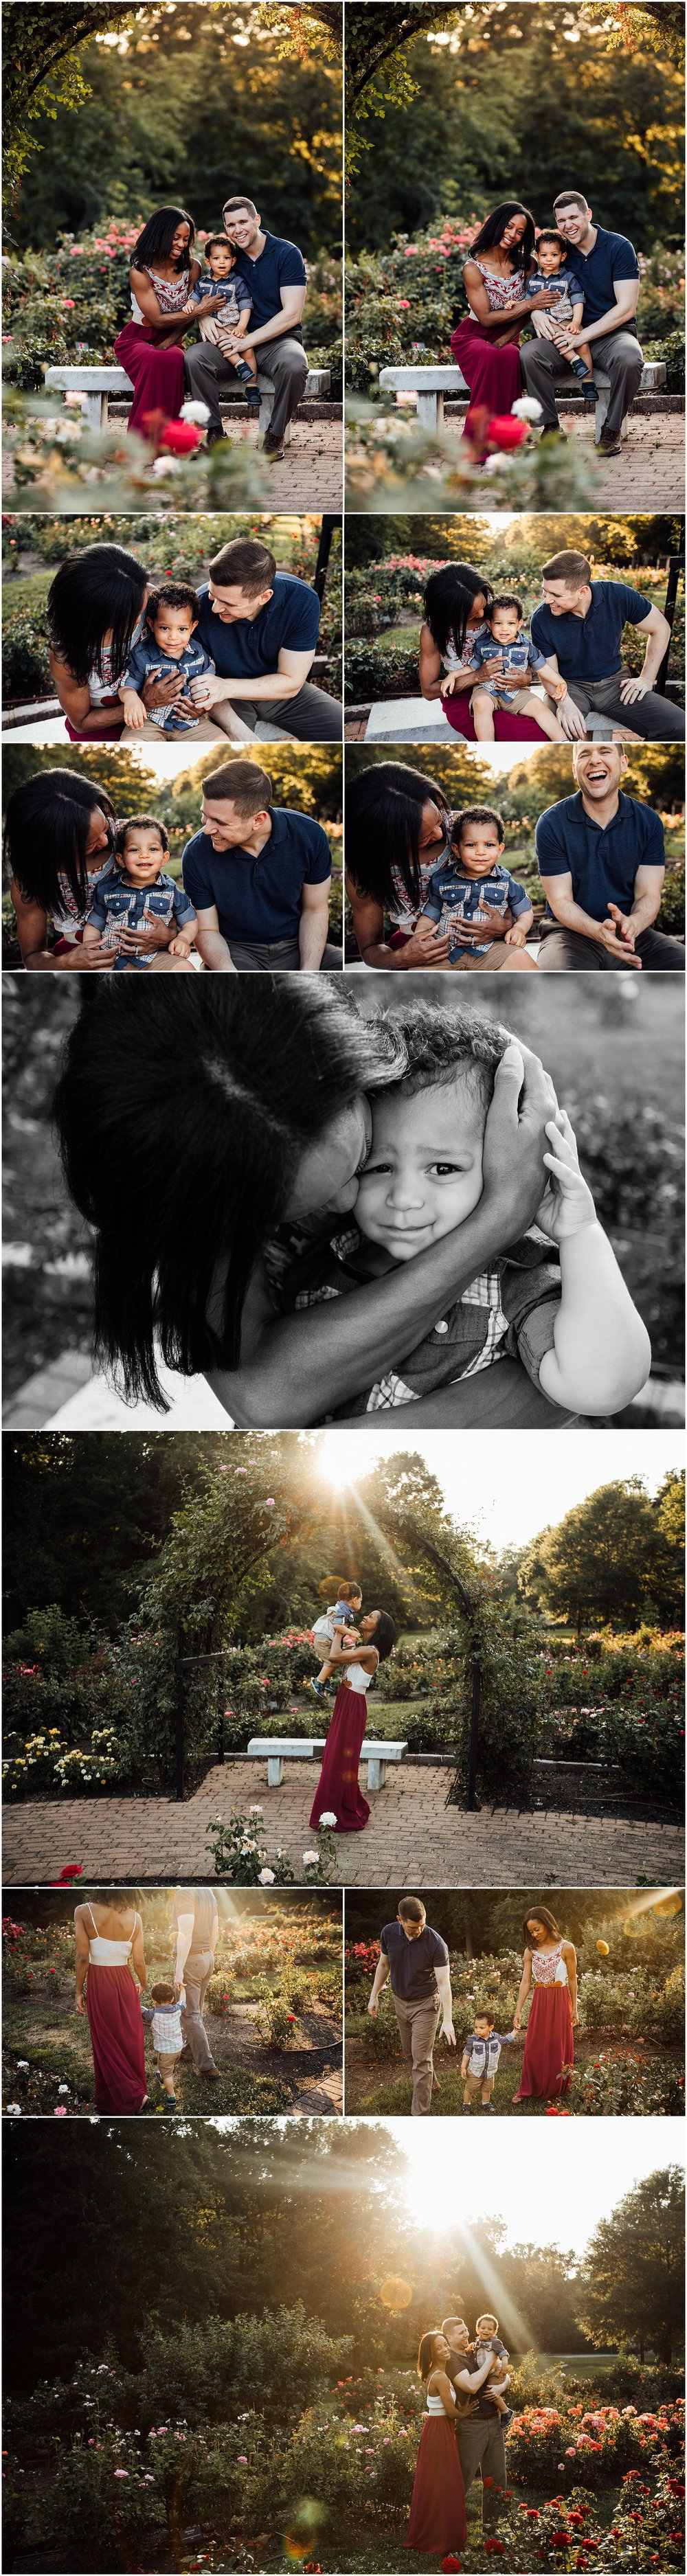 Rose garden family session with toddler by Madison Alabama family photographer Rachel K Photo